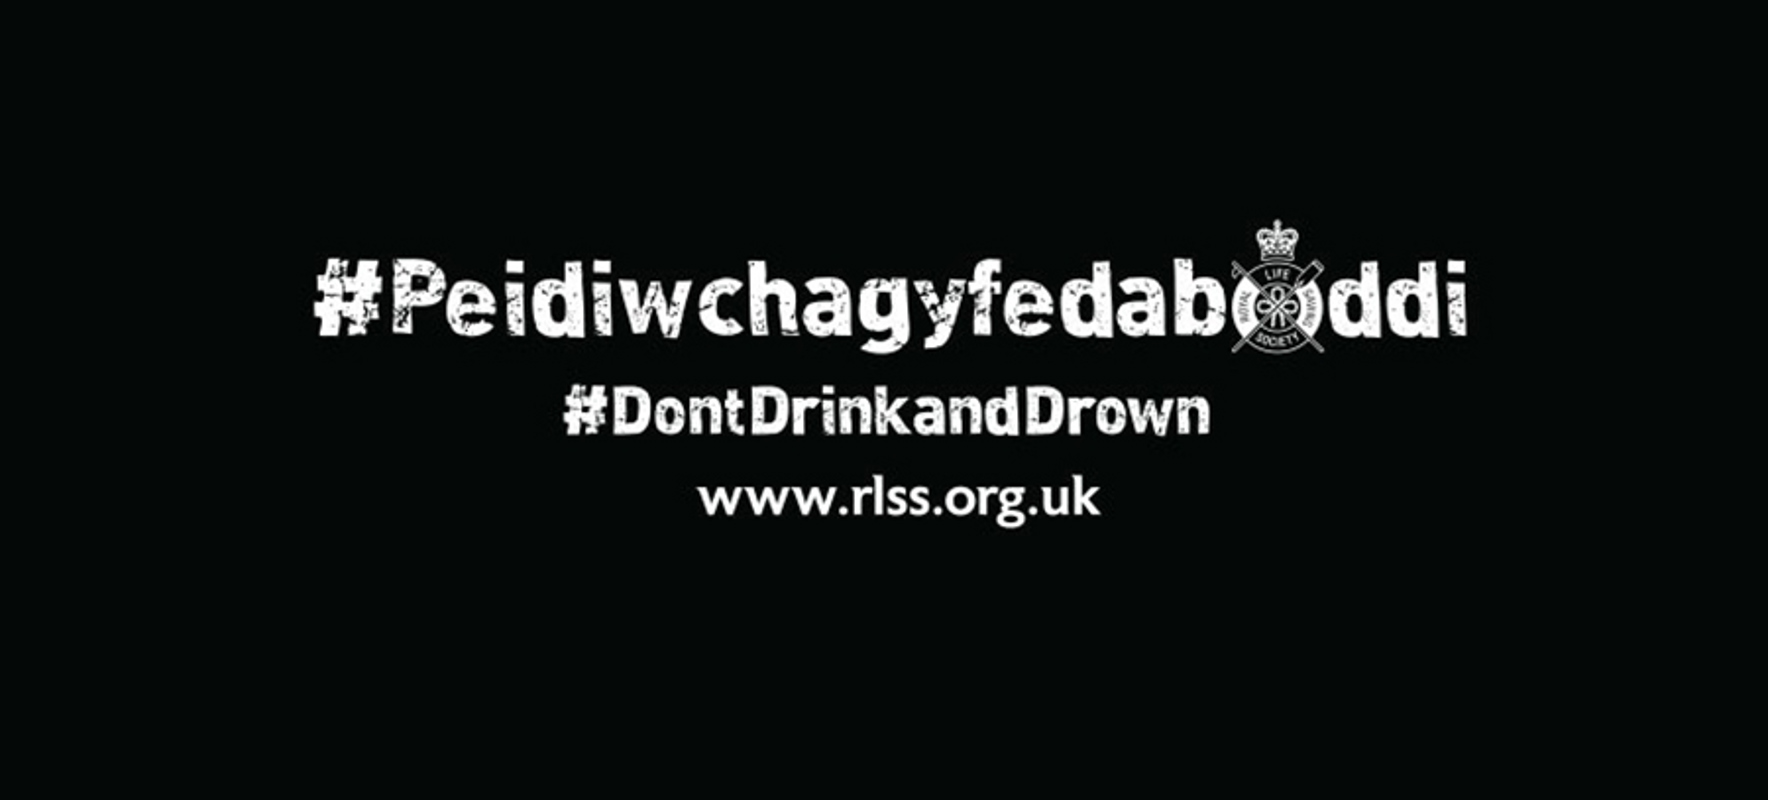 Don't Drink and Drown arrives in Swansea